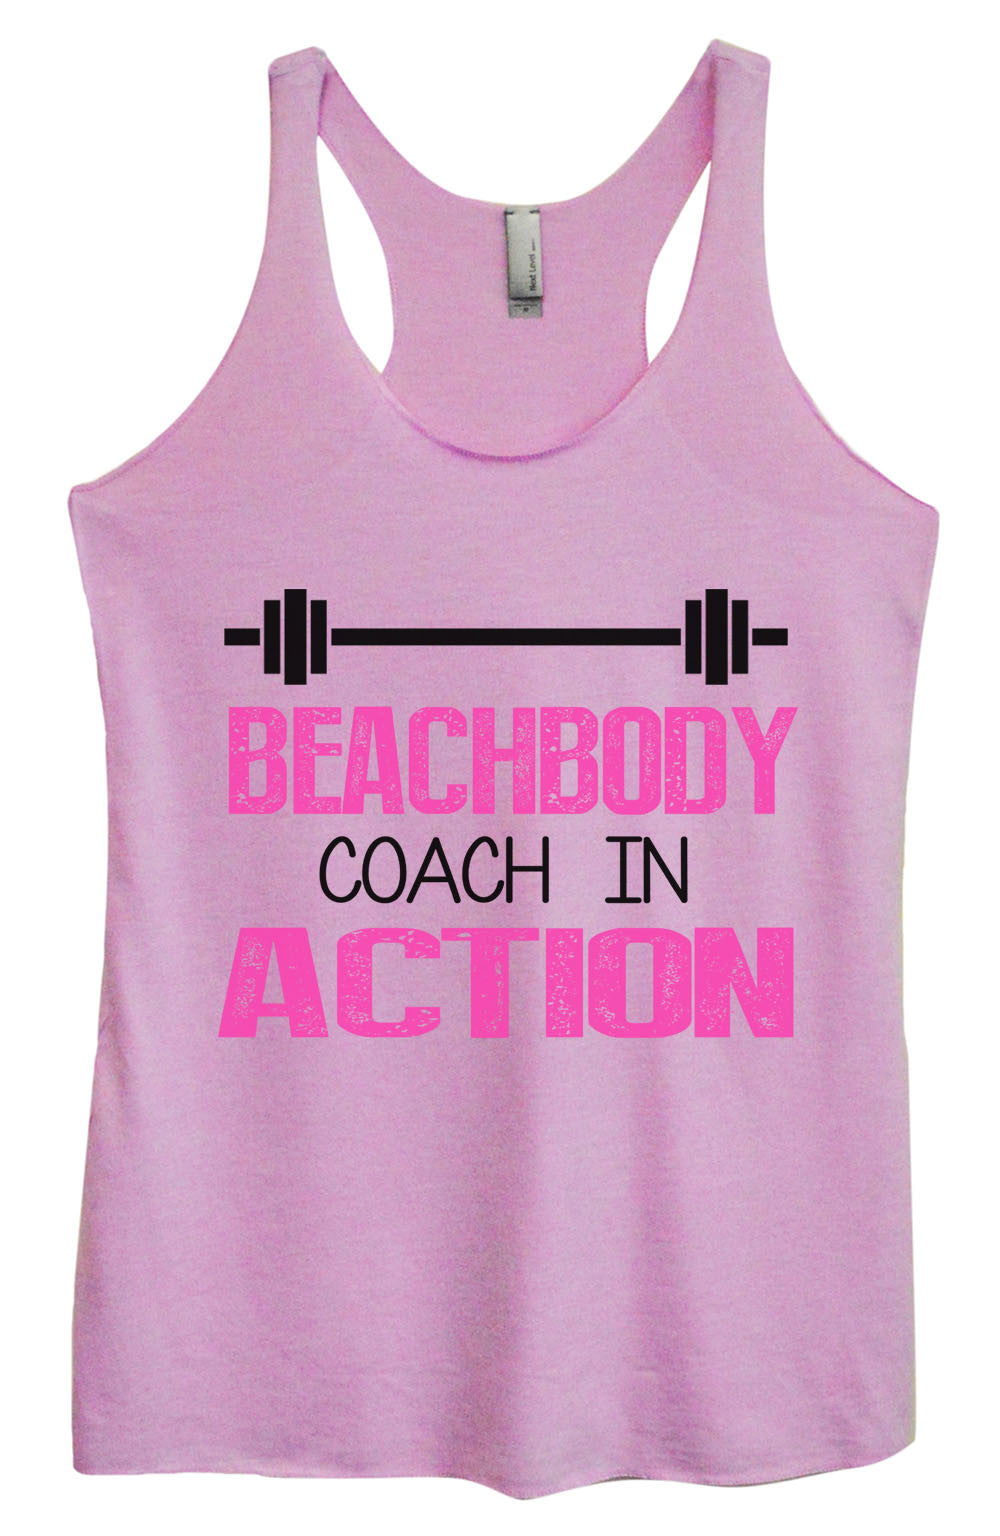 Womens Fashion Triblend Tank Top - Beachbody Coach In Action - Tri-752 - Funny Shirts Tank Tops Burnouts and Triblends  - 3